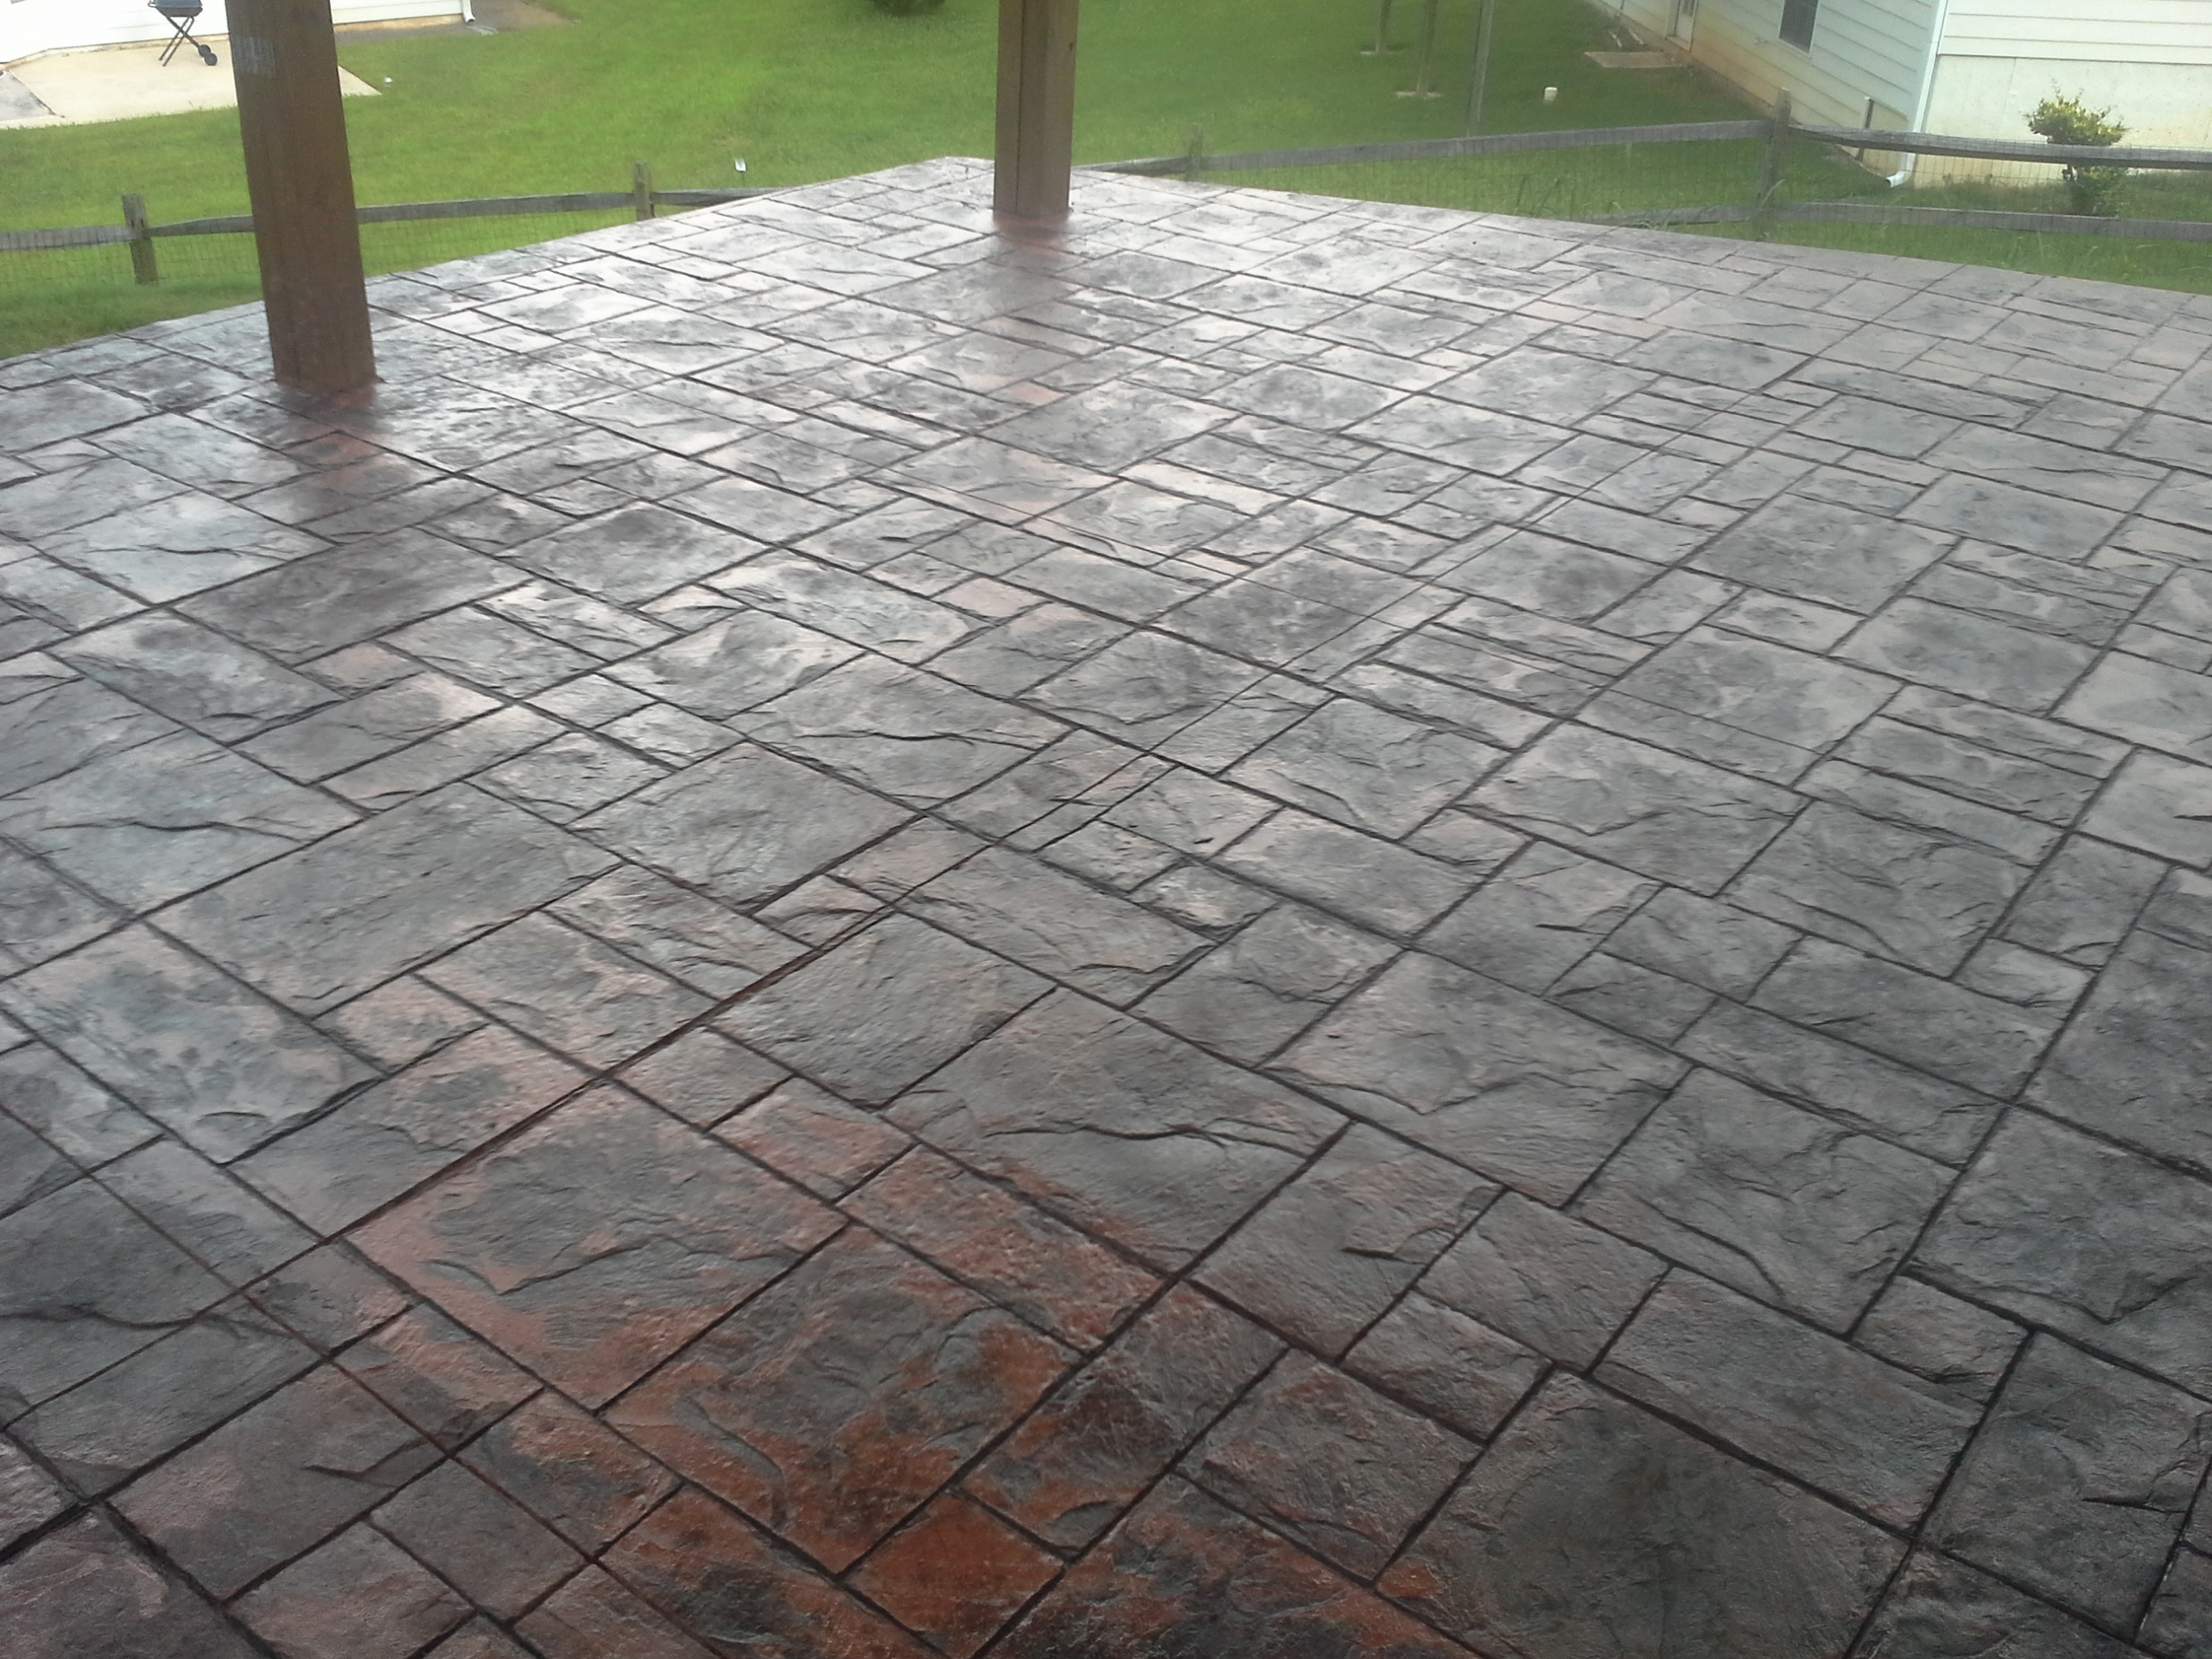 red-grand-ashlar-stamped-patio.jpg